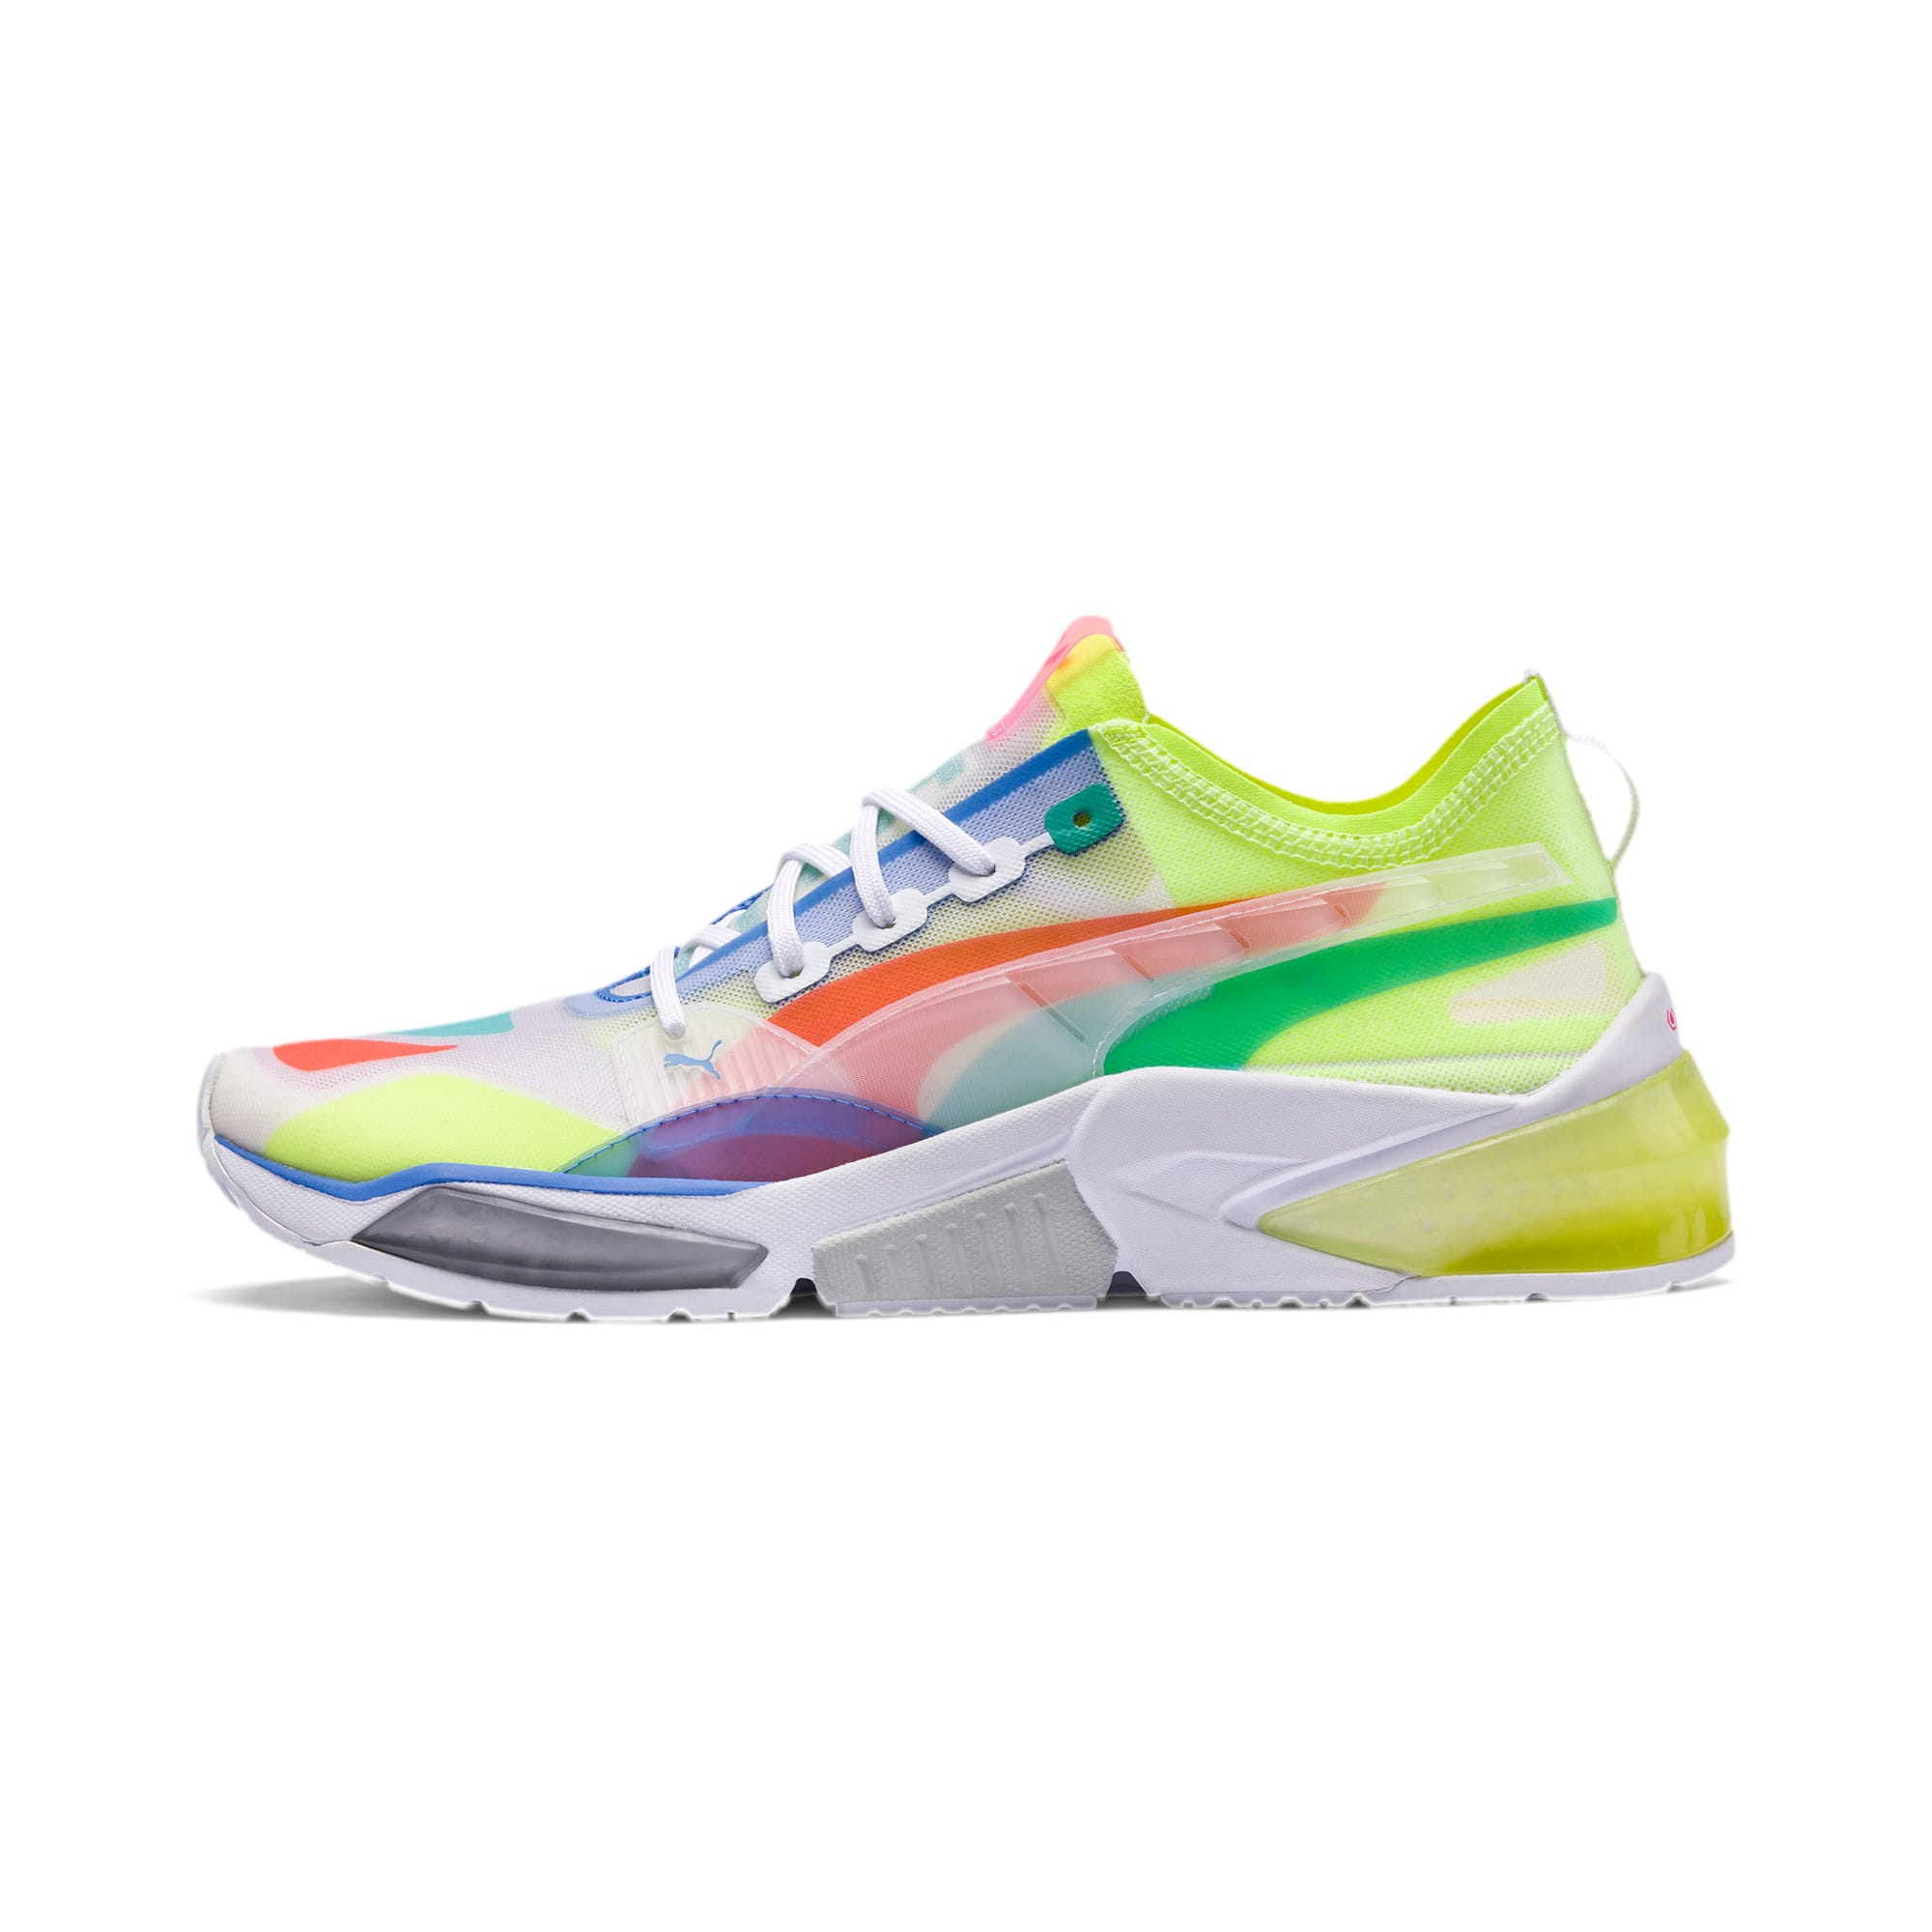 Thumbnail 1 of LQDCELL Optic Sheer Training Shoes, Puma White, medium-IND